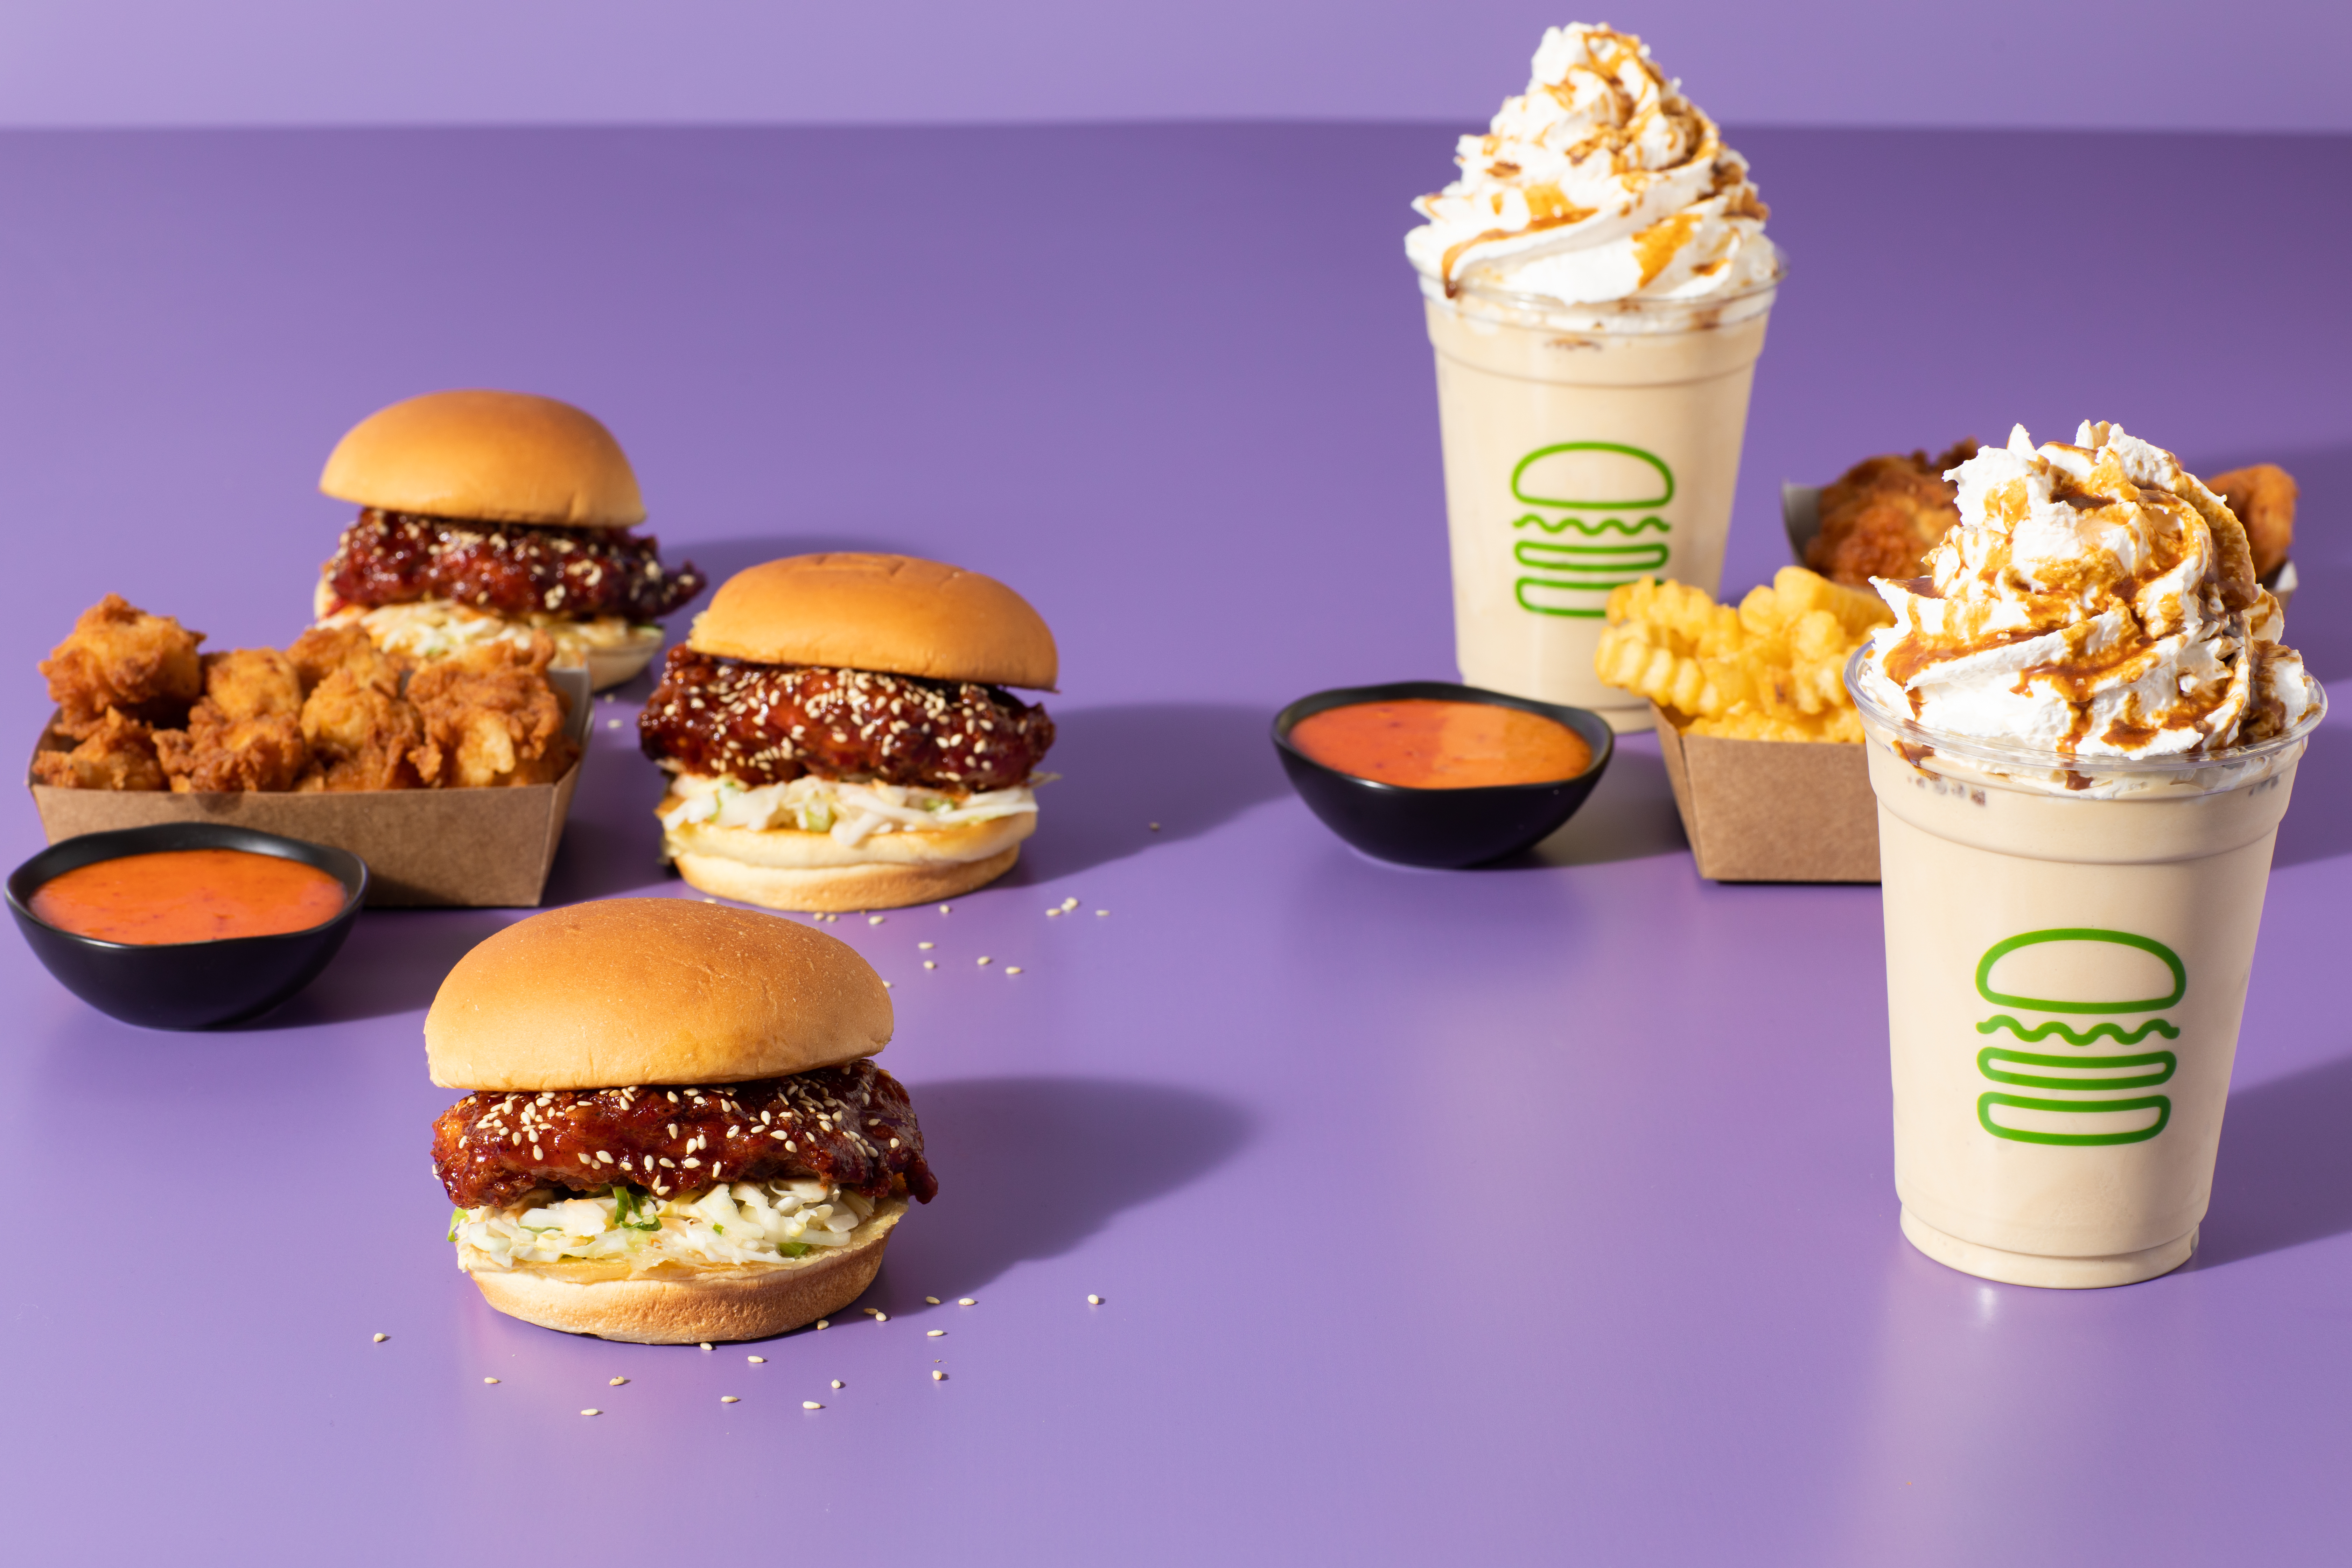 Fried chicken sandwiches, nuggets, fries, and two milkshakes laid out with a purple background